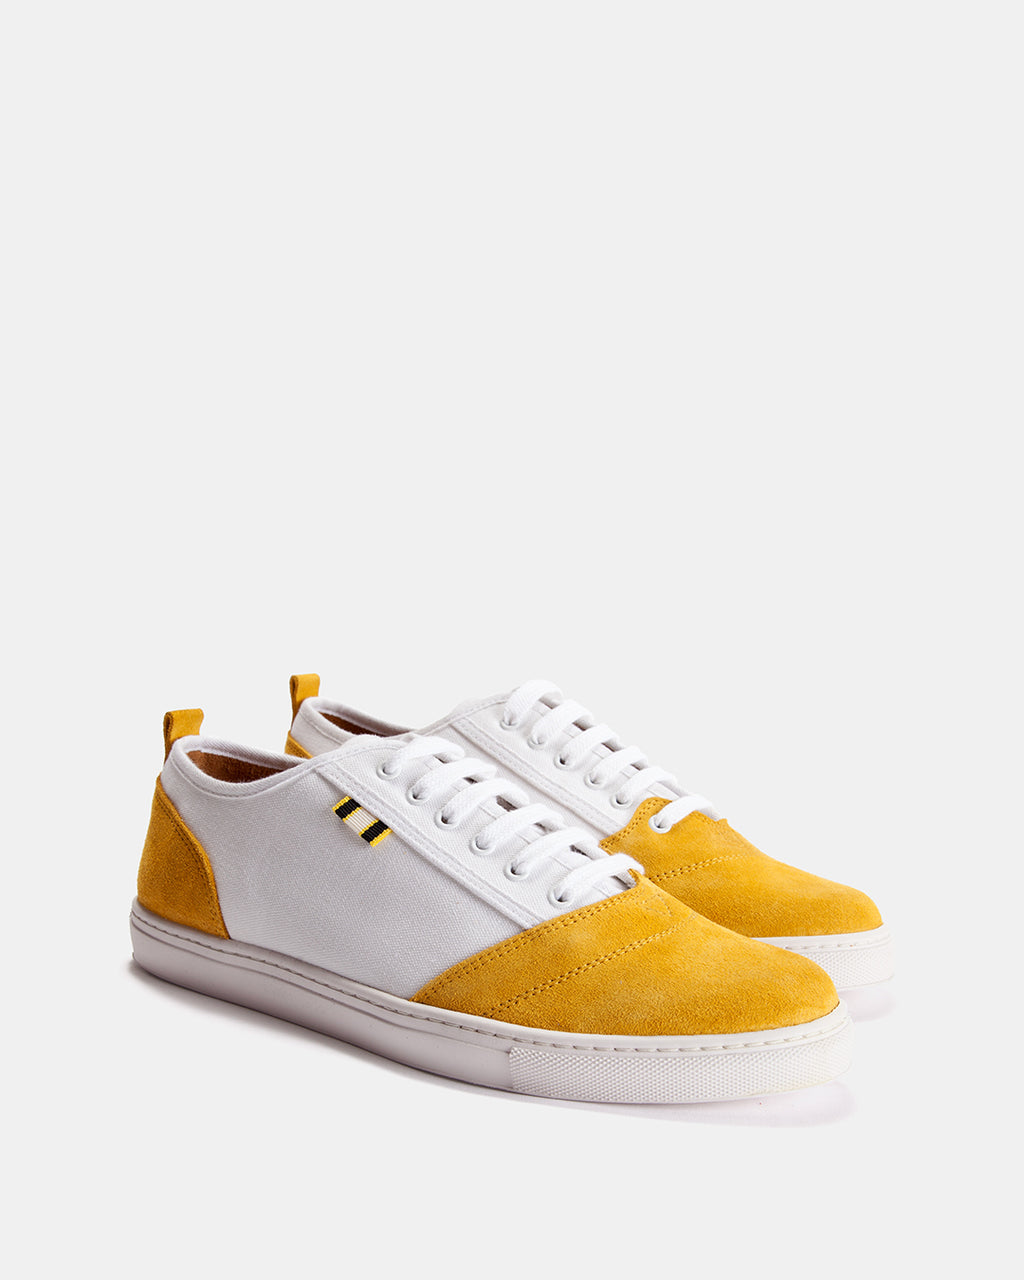 APR001 - Suede & Canvas - Gold/White